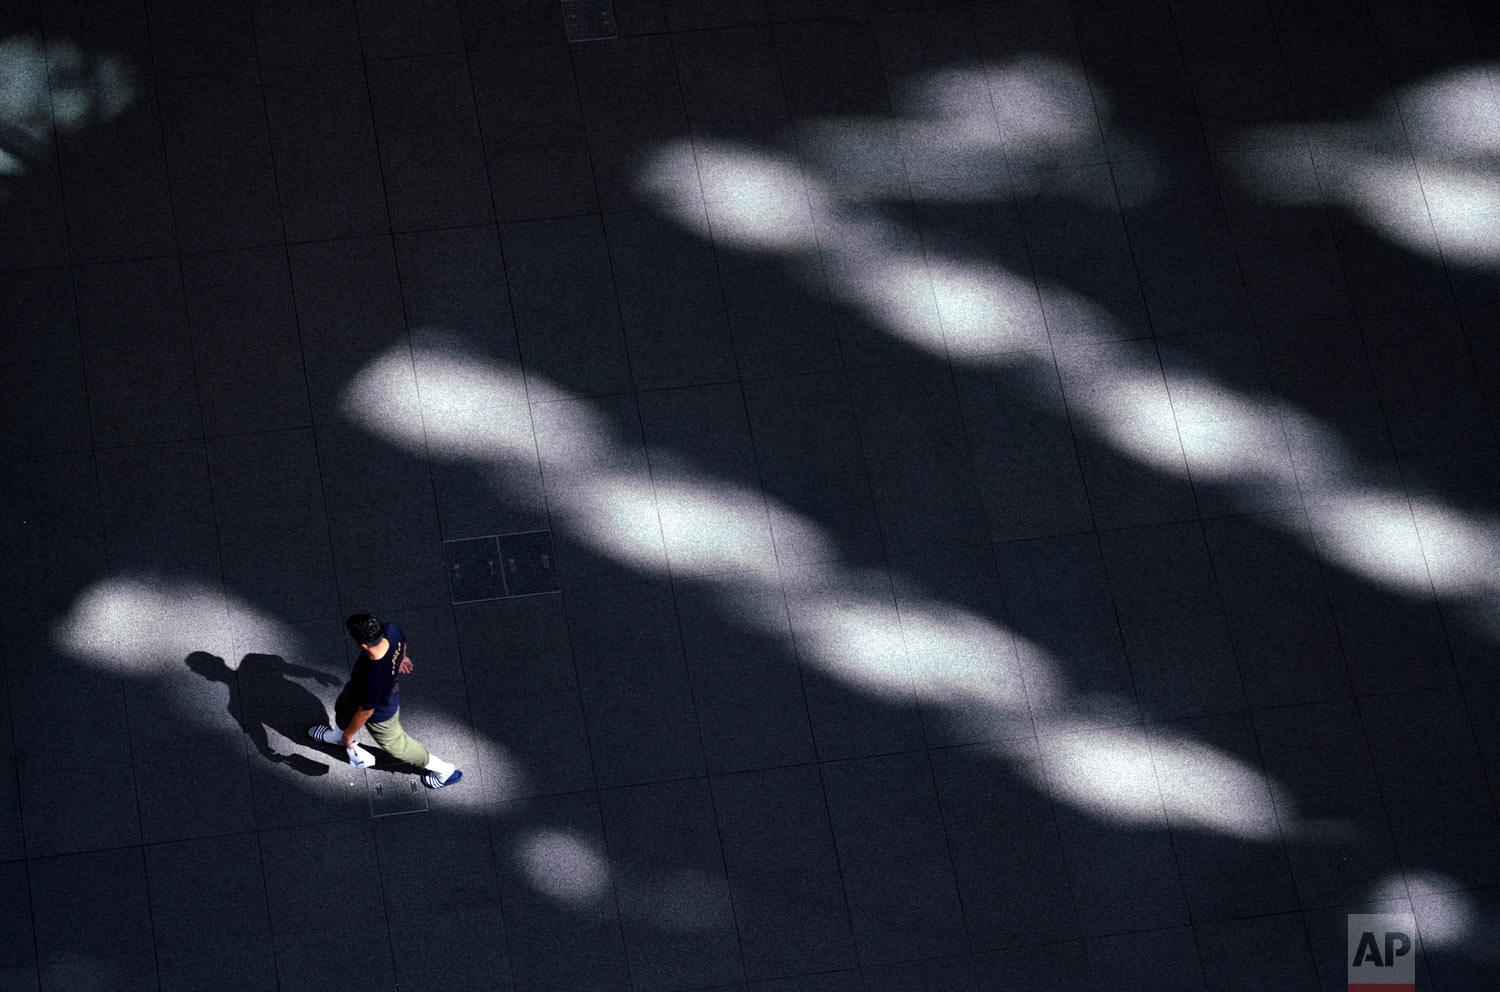 A man walks through a building in Tokyo as the temperature rose to 35 degrees Celsius (95 degrees Fahrenheit), Wednesday, Aug. 22, 2018. (AP Photo/Eugene Hoshiko)